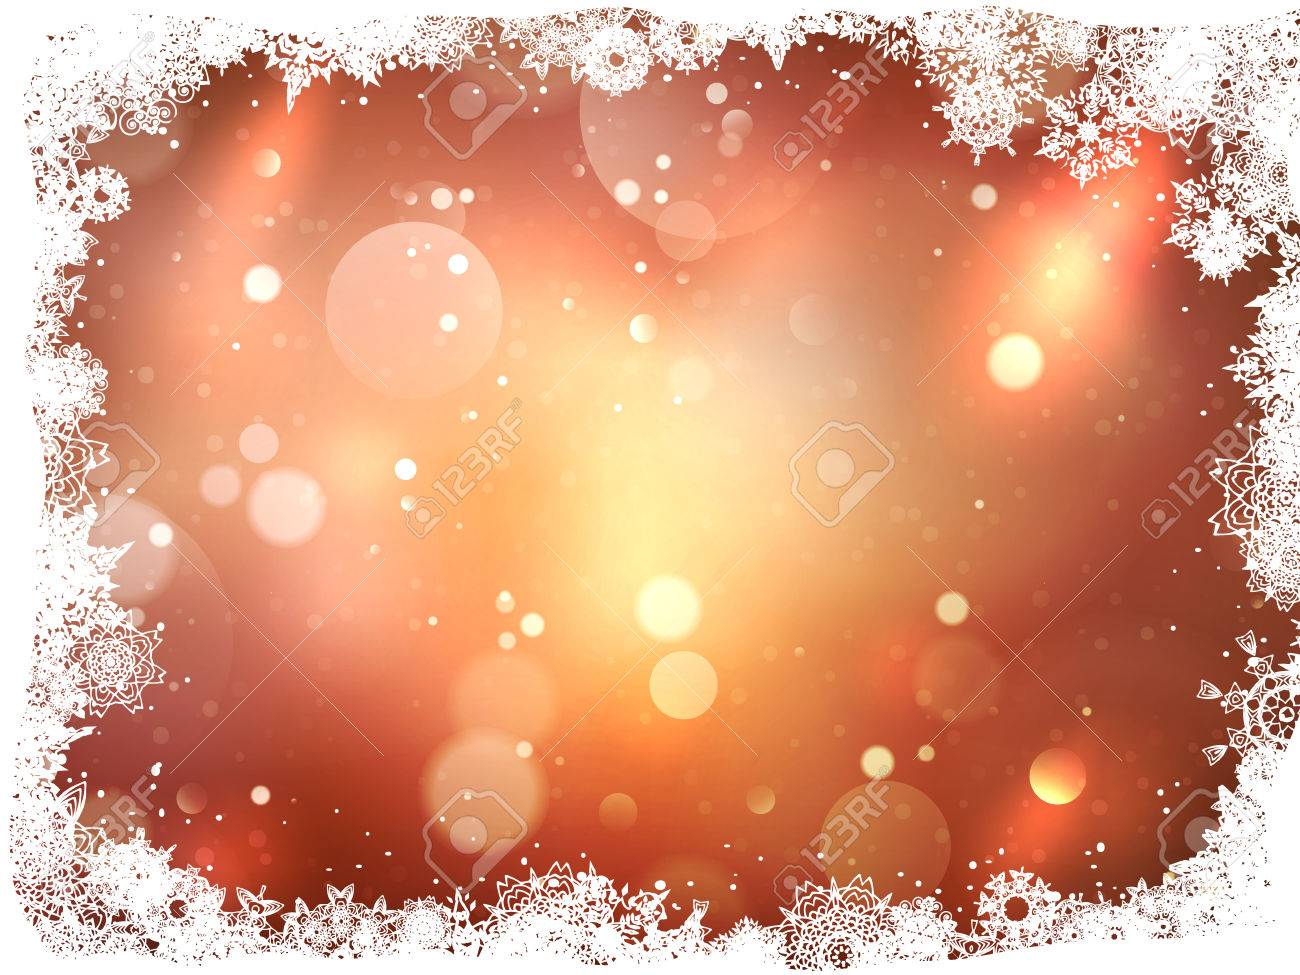 Abstract christmas background. - 47563064